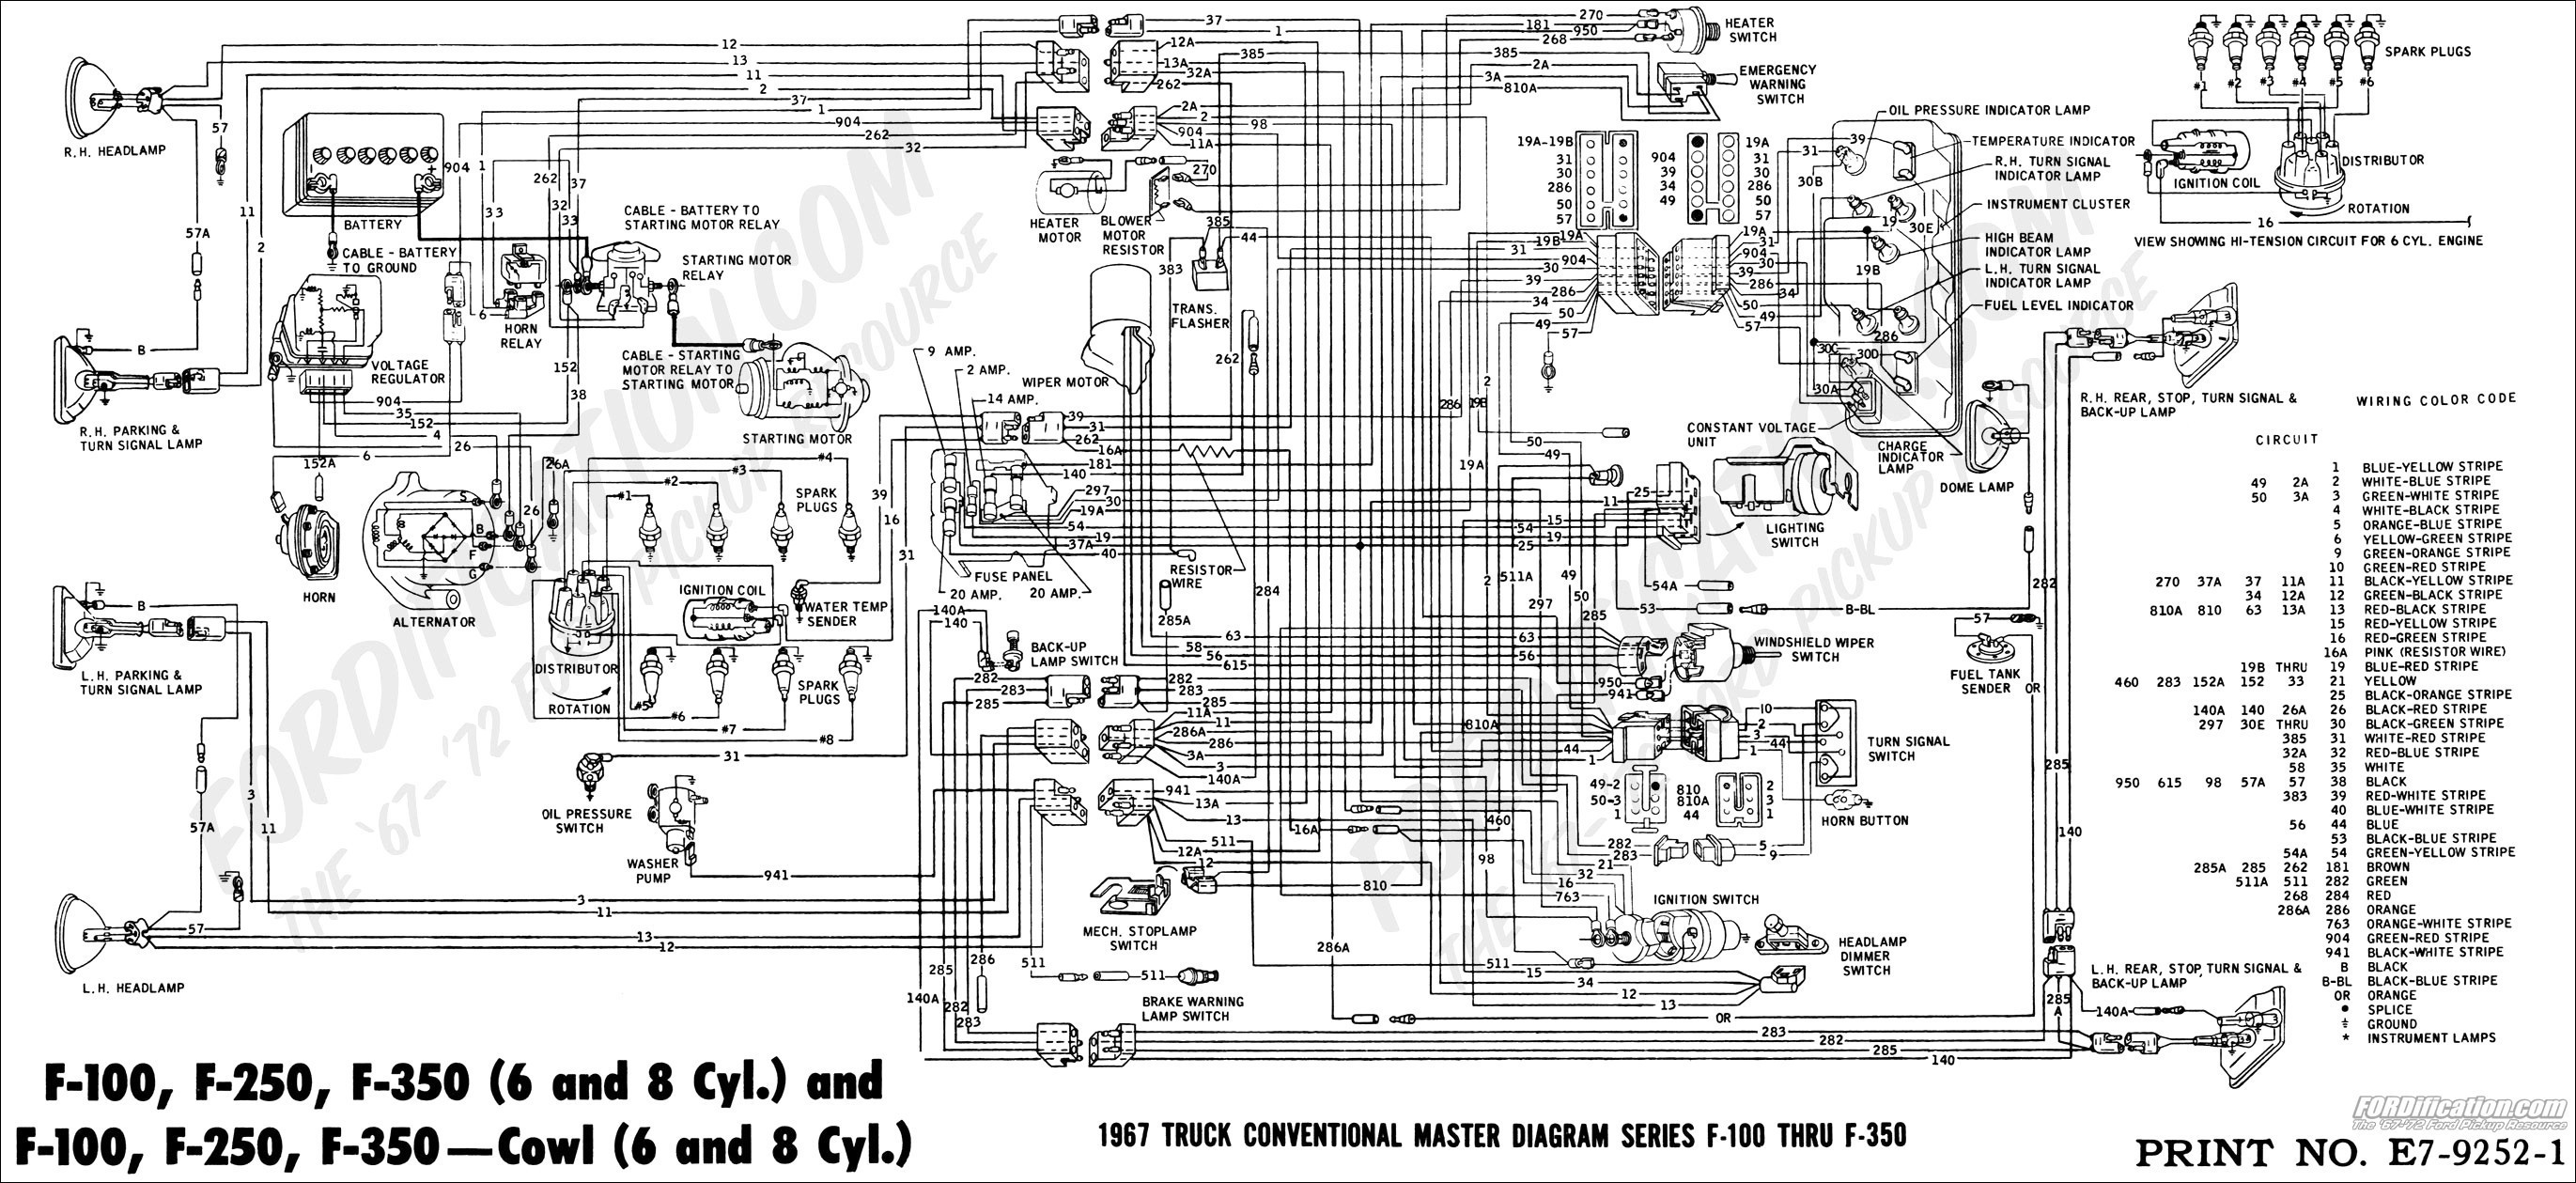 Ford Proportioning Valve Diagram 1990 F350 Brake Diagram Circuit Wiring and Diagram Hub • Of Ford Proportioning Valve Diagram